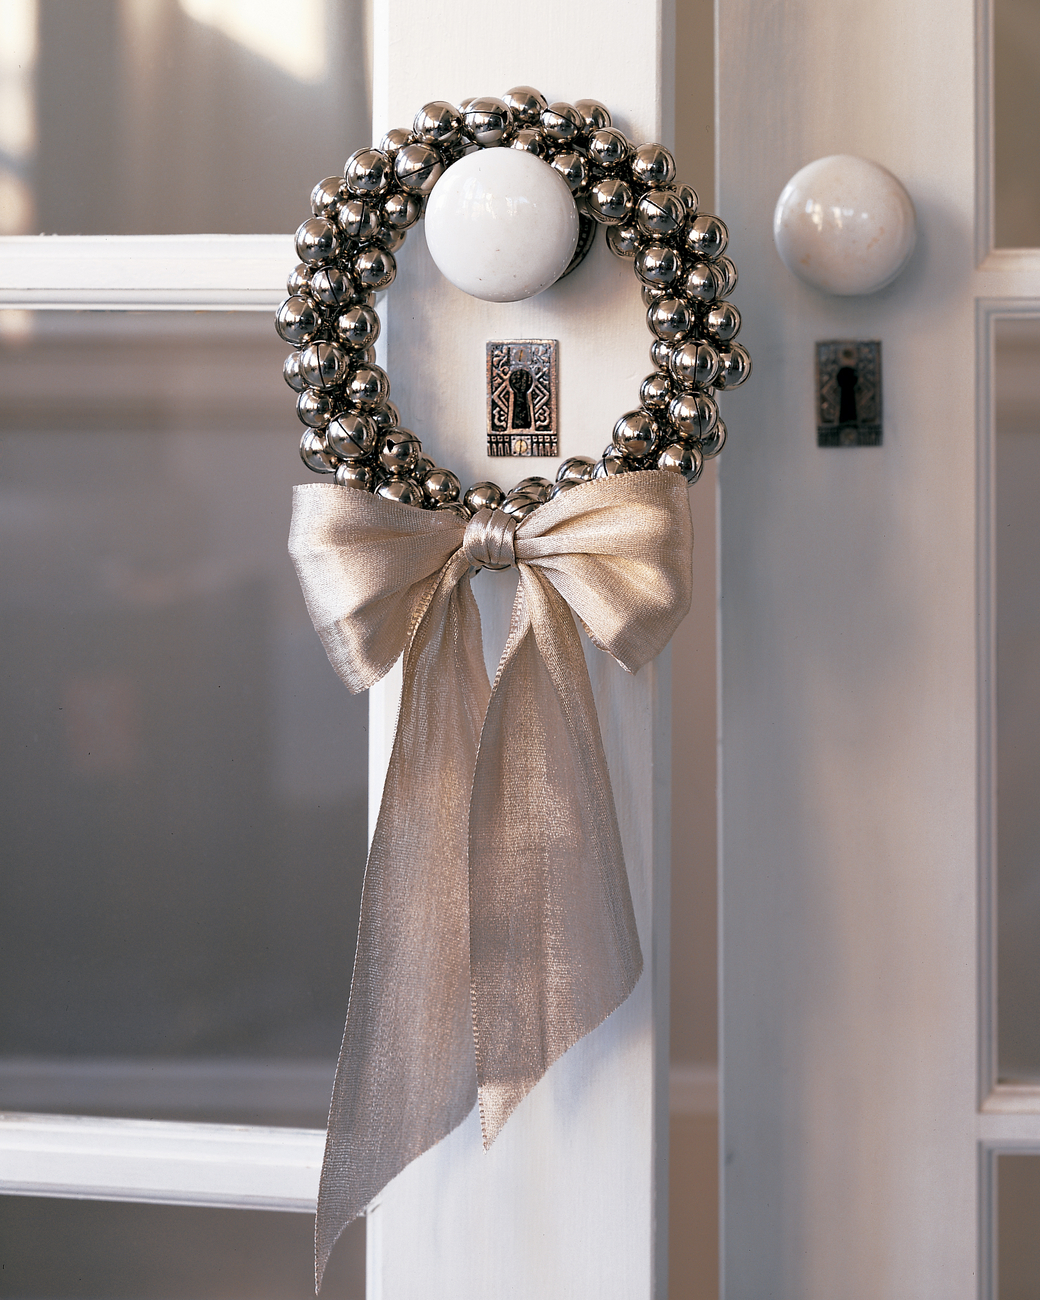 For a cute little wreath to hang on your doorknobs, make this DIY jingle bell wreath!